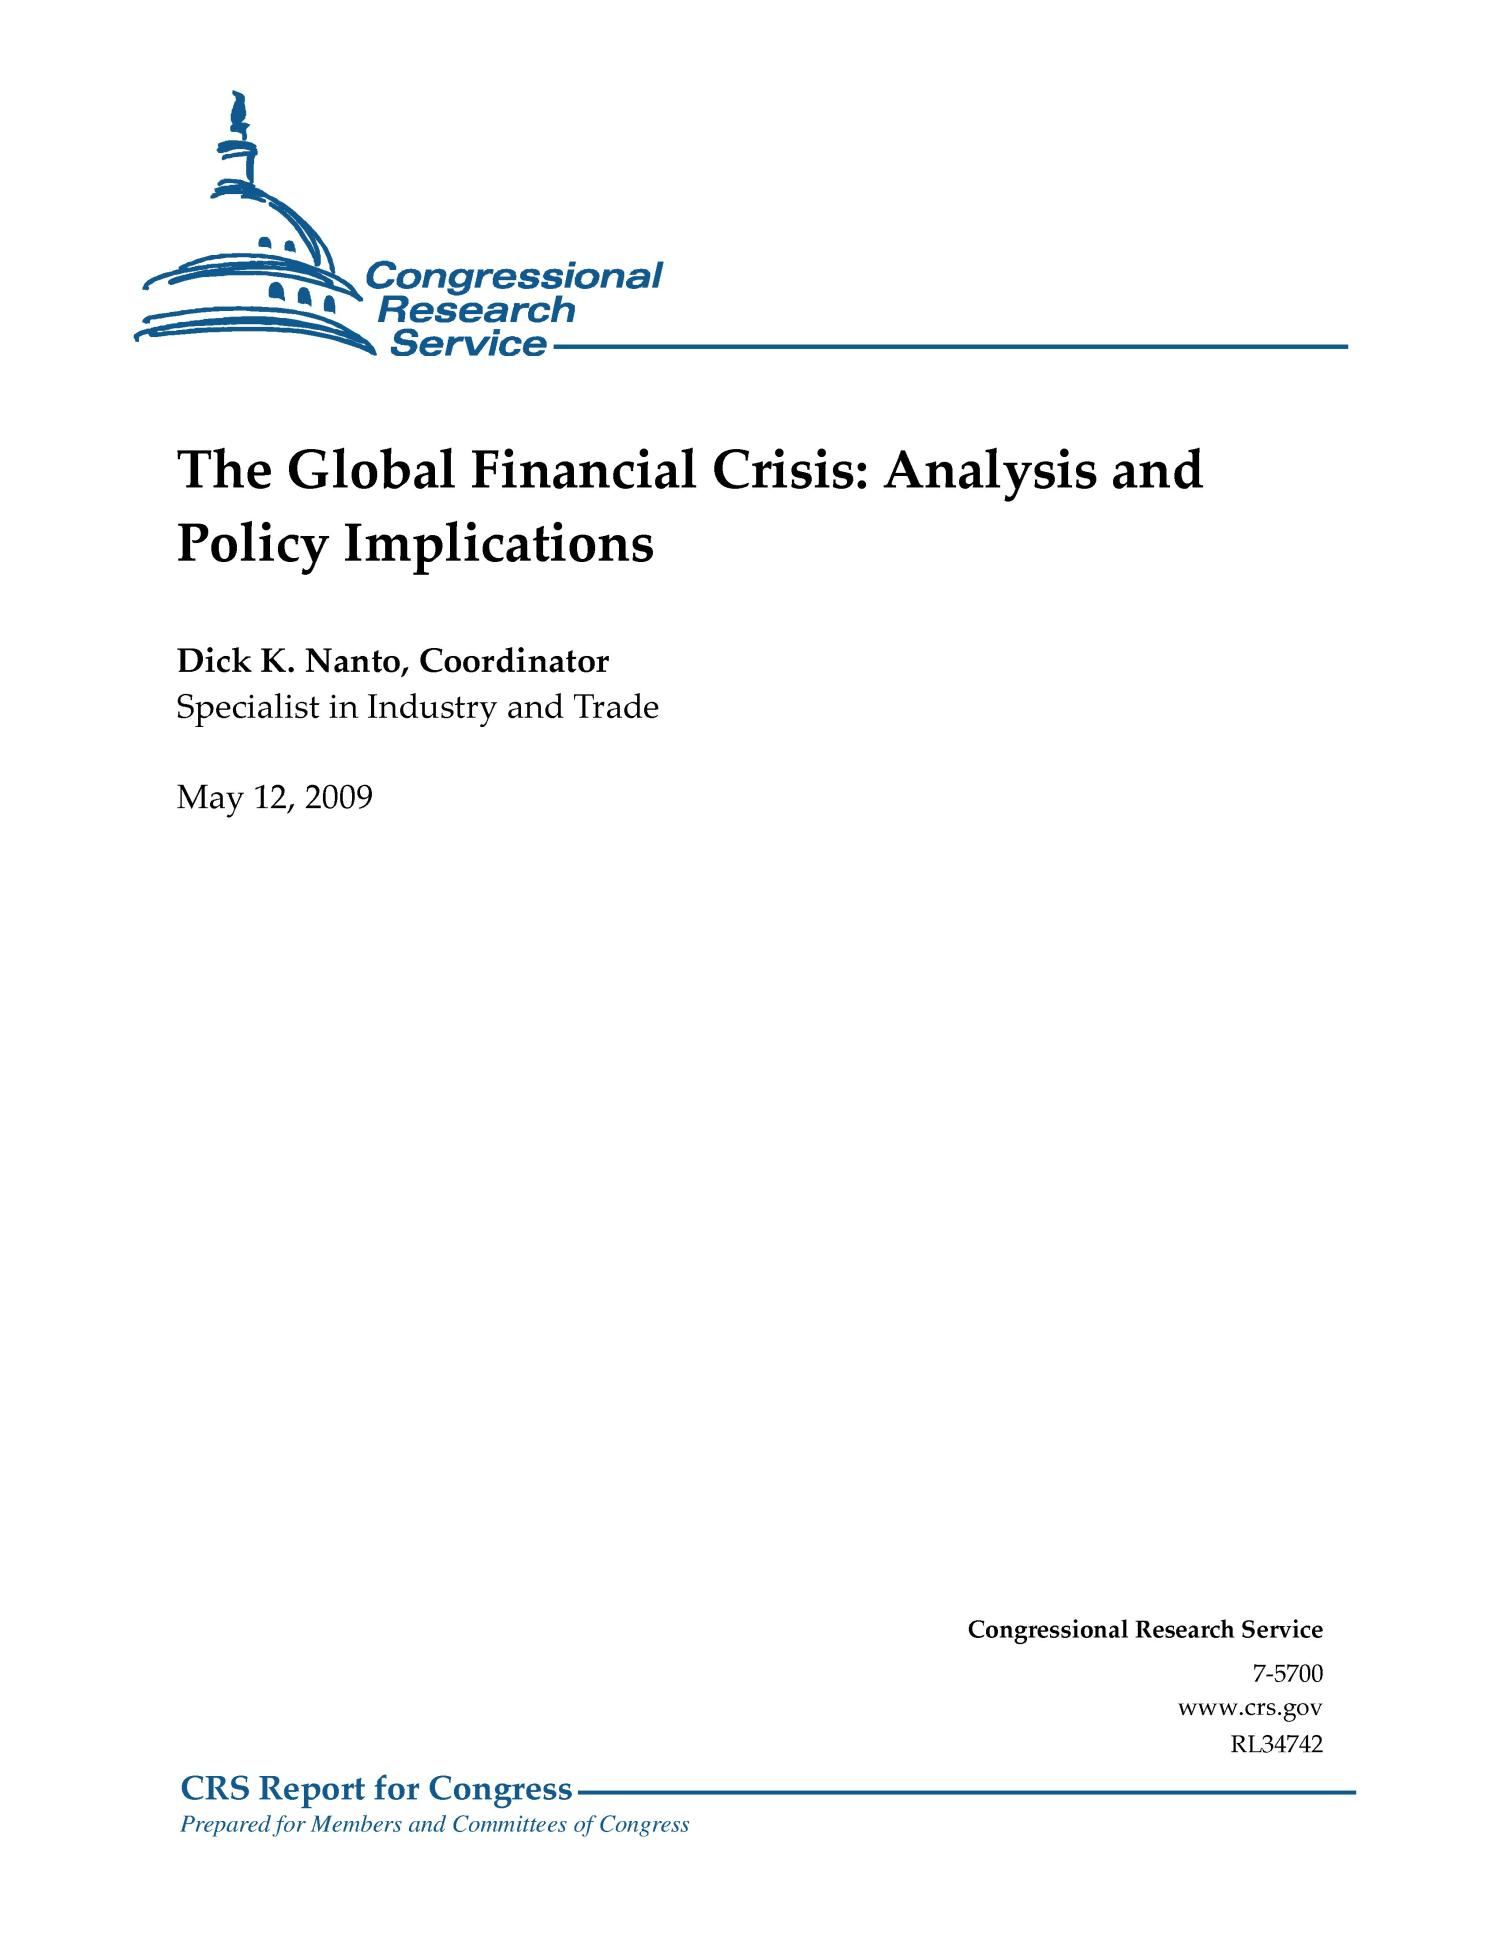 The Global Financial Crisis: Analysis and Policy Implications                                                                                                      [Sequence #]: 1 of 116